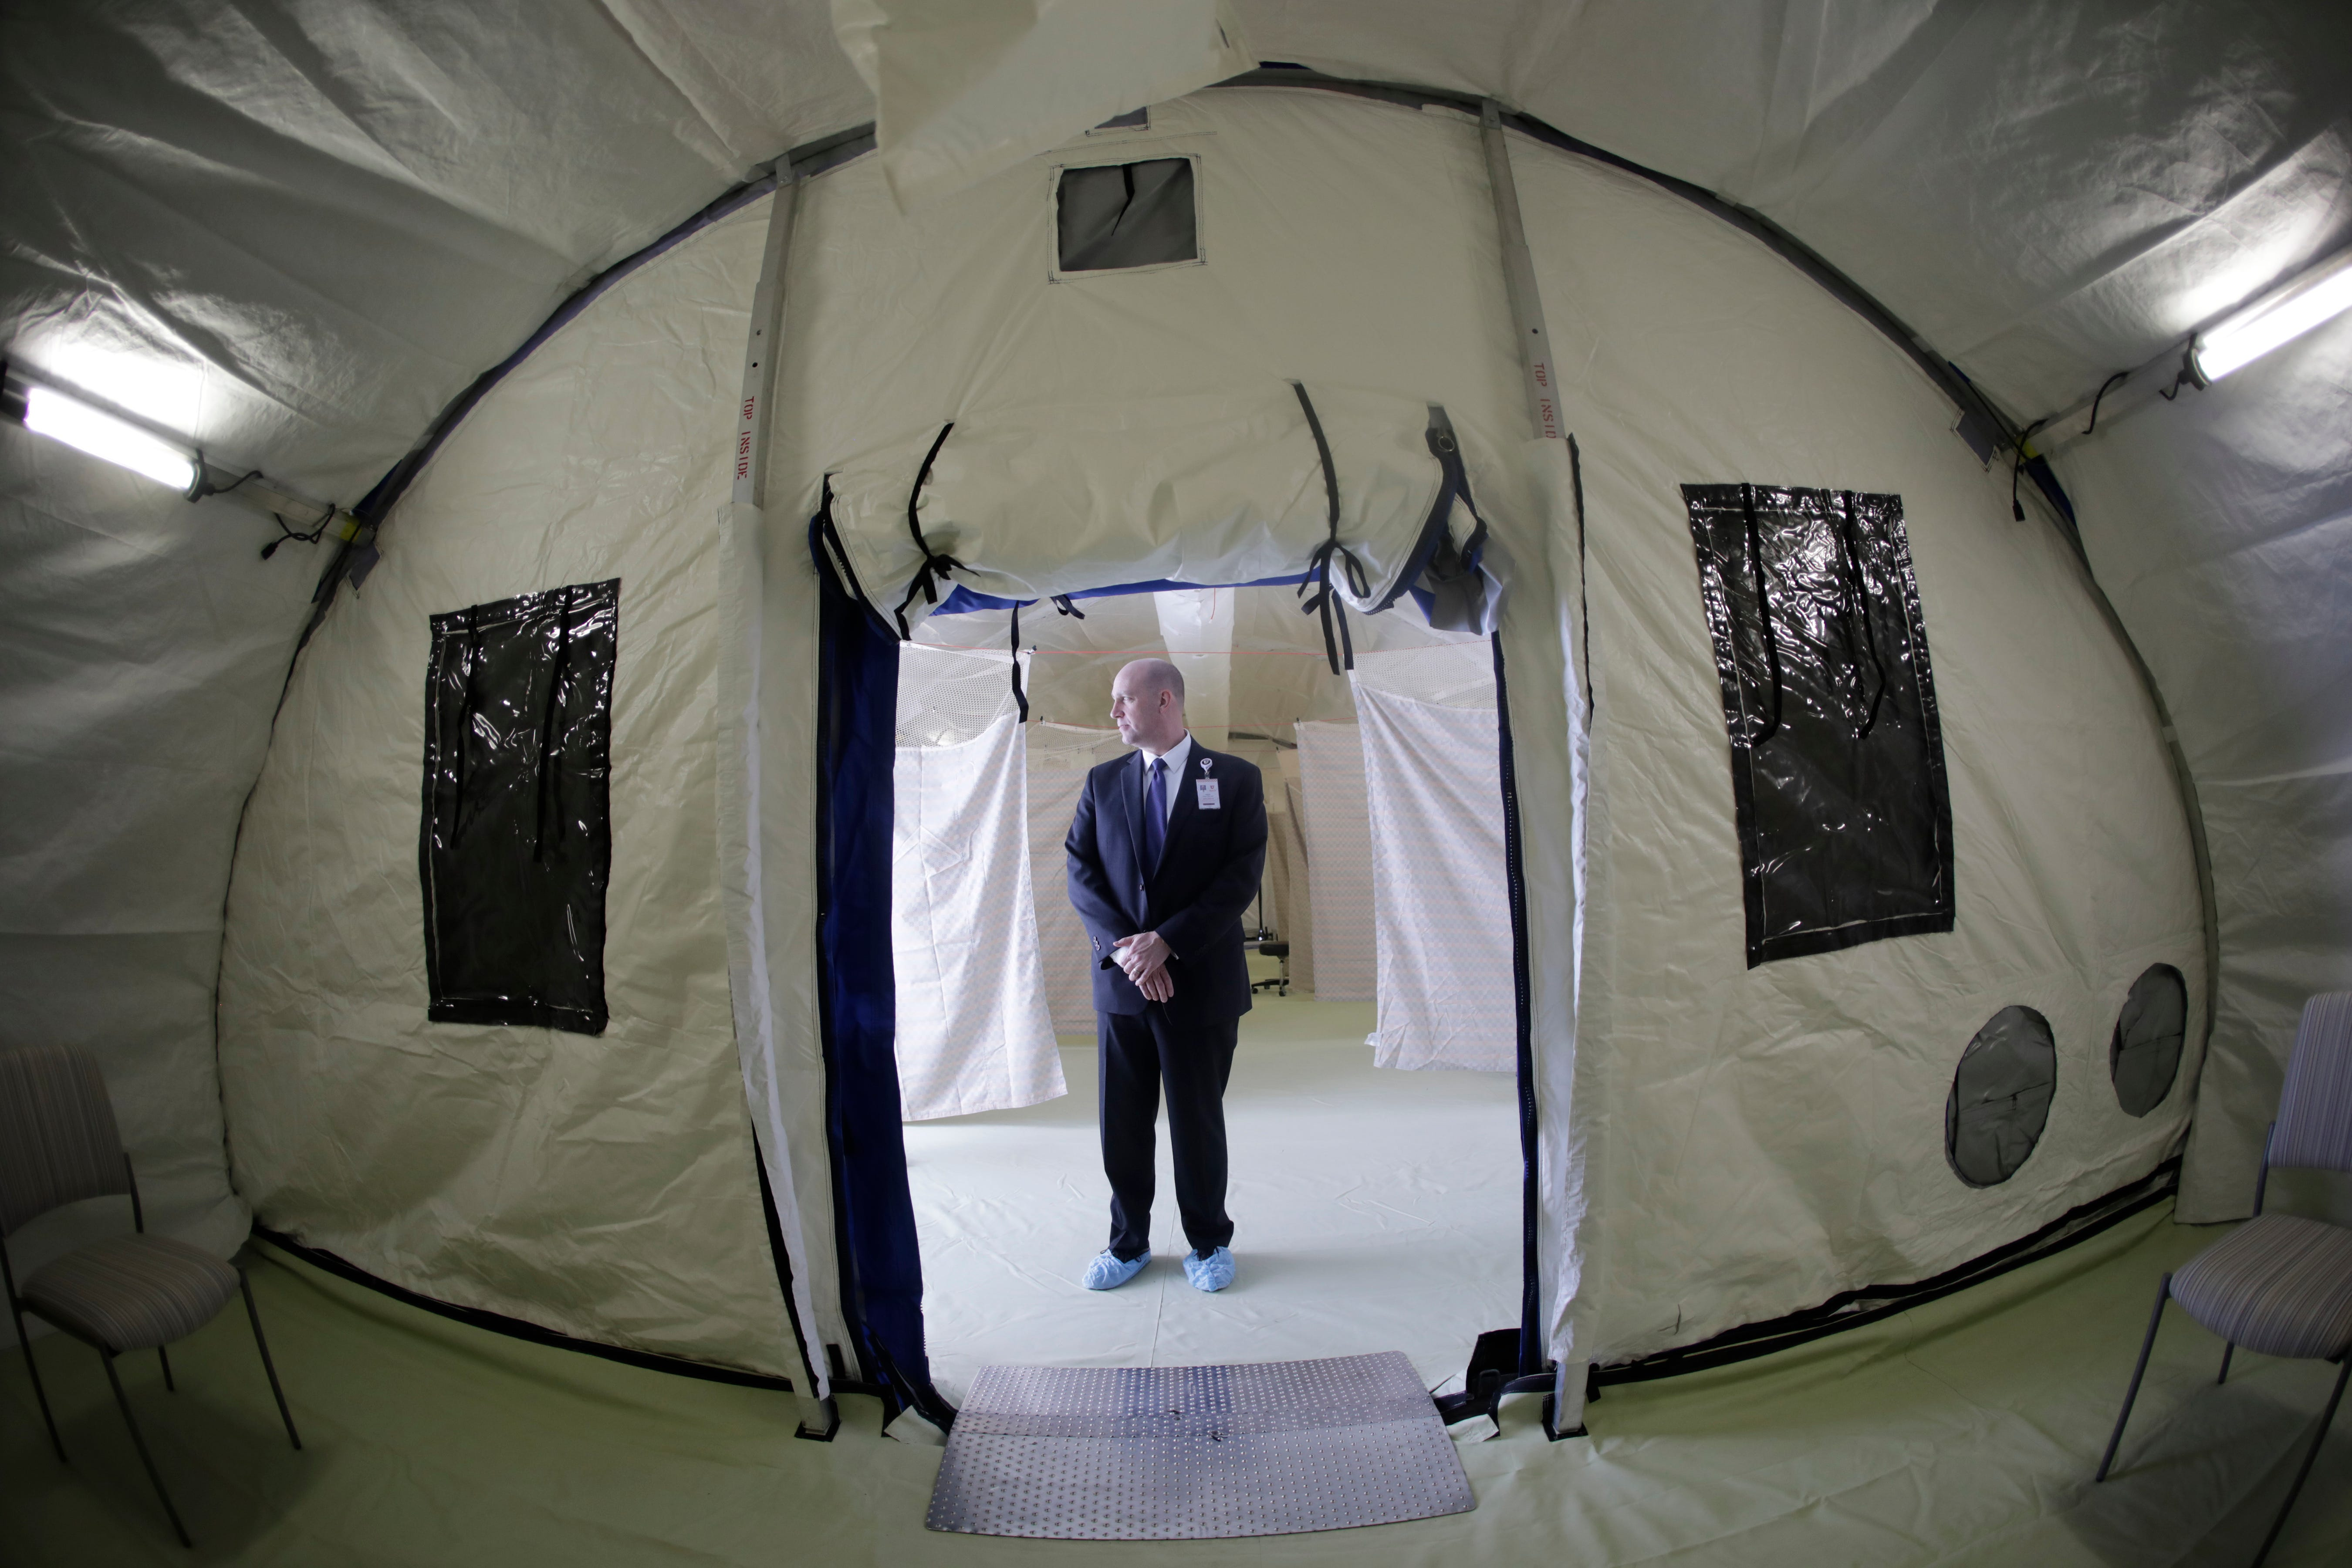 Philip Chaffee, senior director emergency management stands in a negative pressure tent outside the University of Utah's hospital, Monday, March 9, 2020, in Salt Lake City. The hospital is taking steps to limit the spread of the new coronavirus, including new visitor policies and the construction of outdoor negative pressure tents where people can be tested without having to go inside the hospital building.